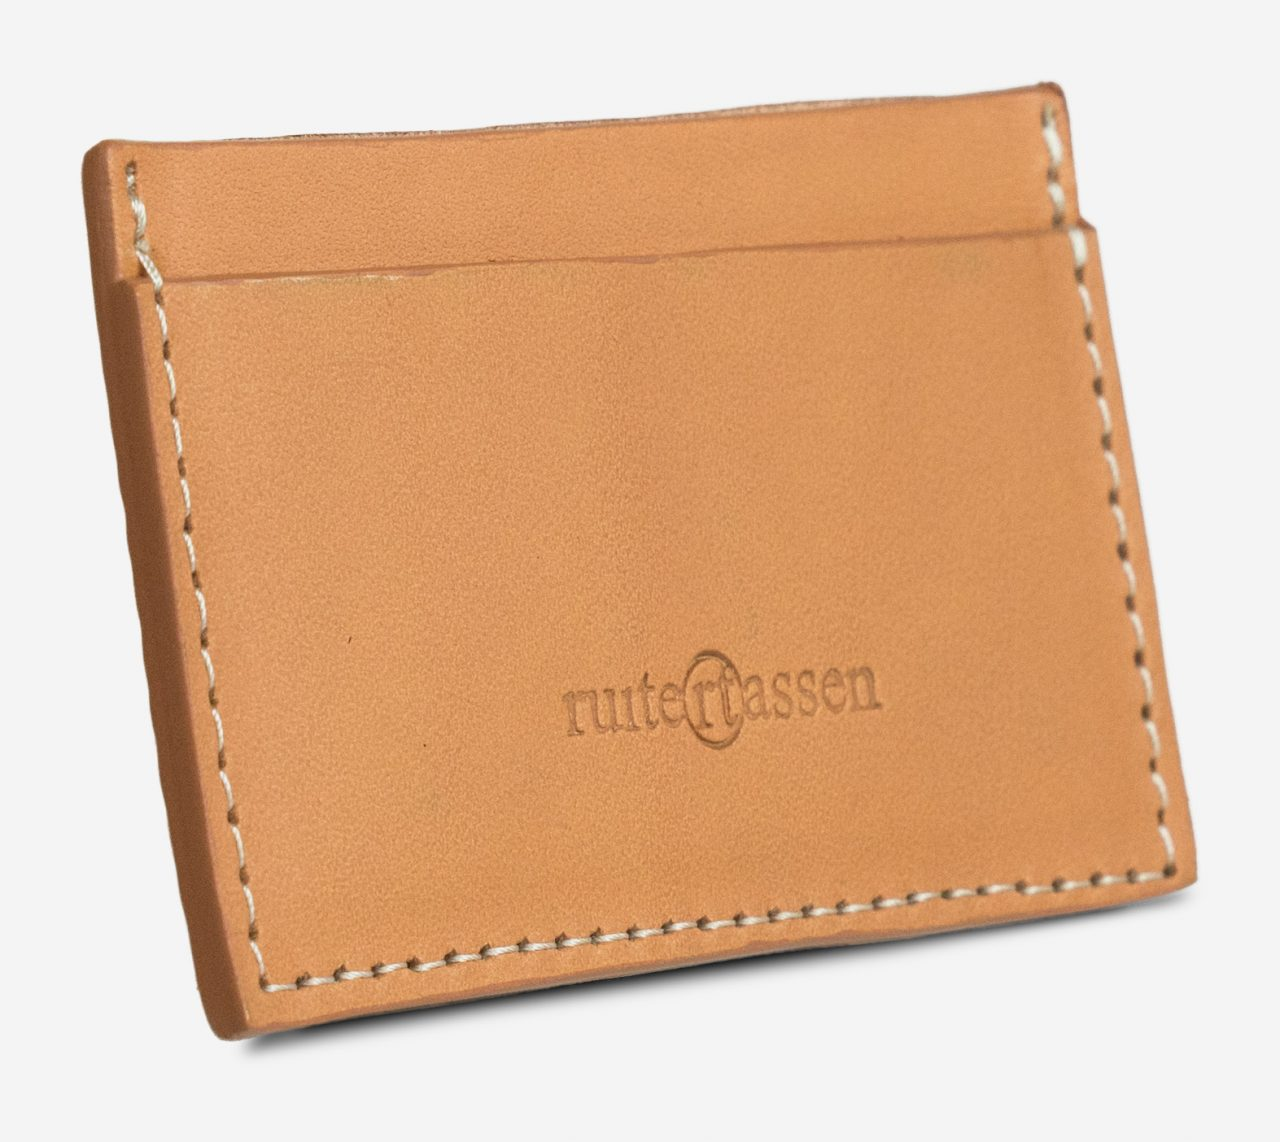 tan leather card holder side view.